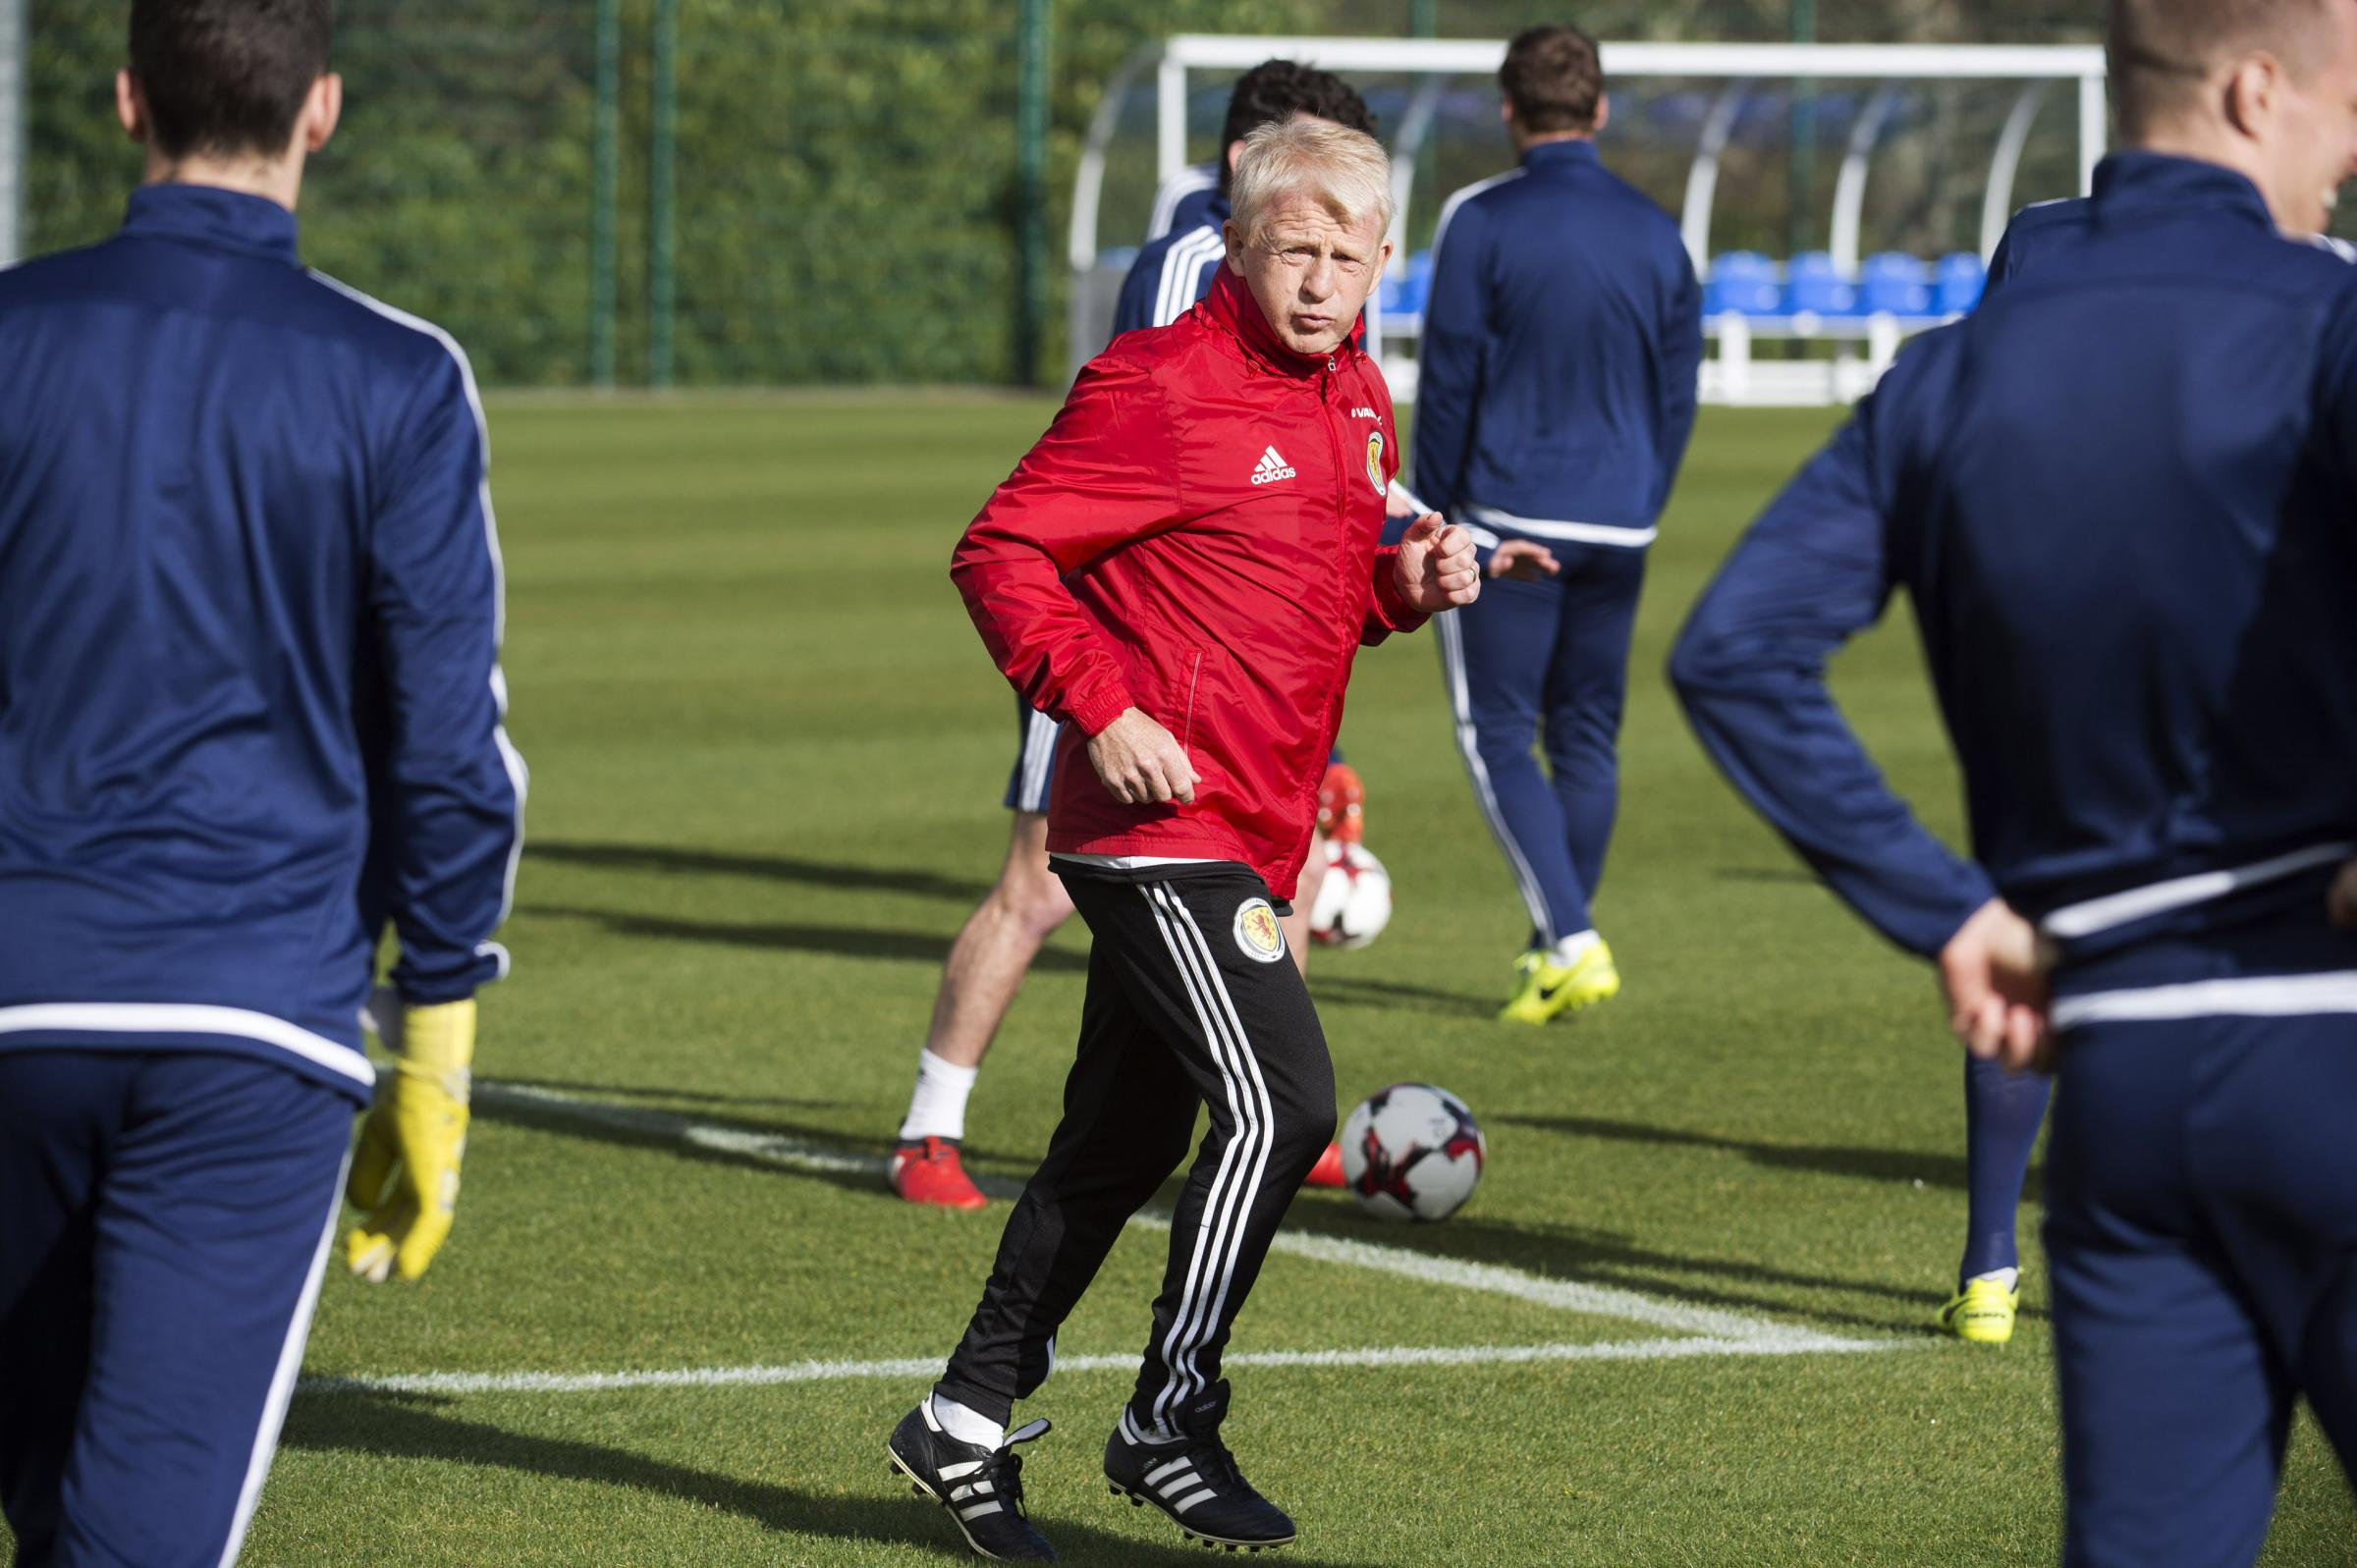 Lack of experience won't stop Gordon Strachan demanding goals from Stuart Armstrong on his Scotland bow